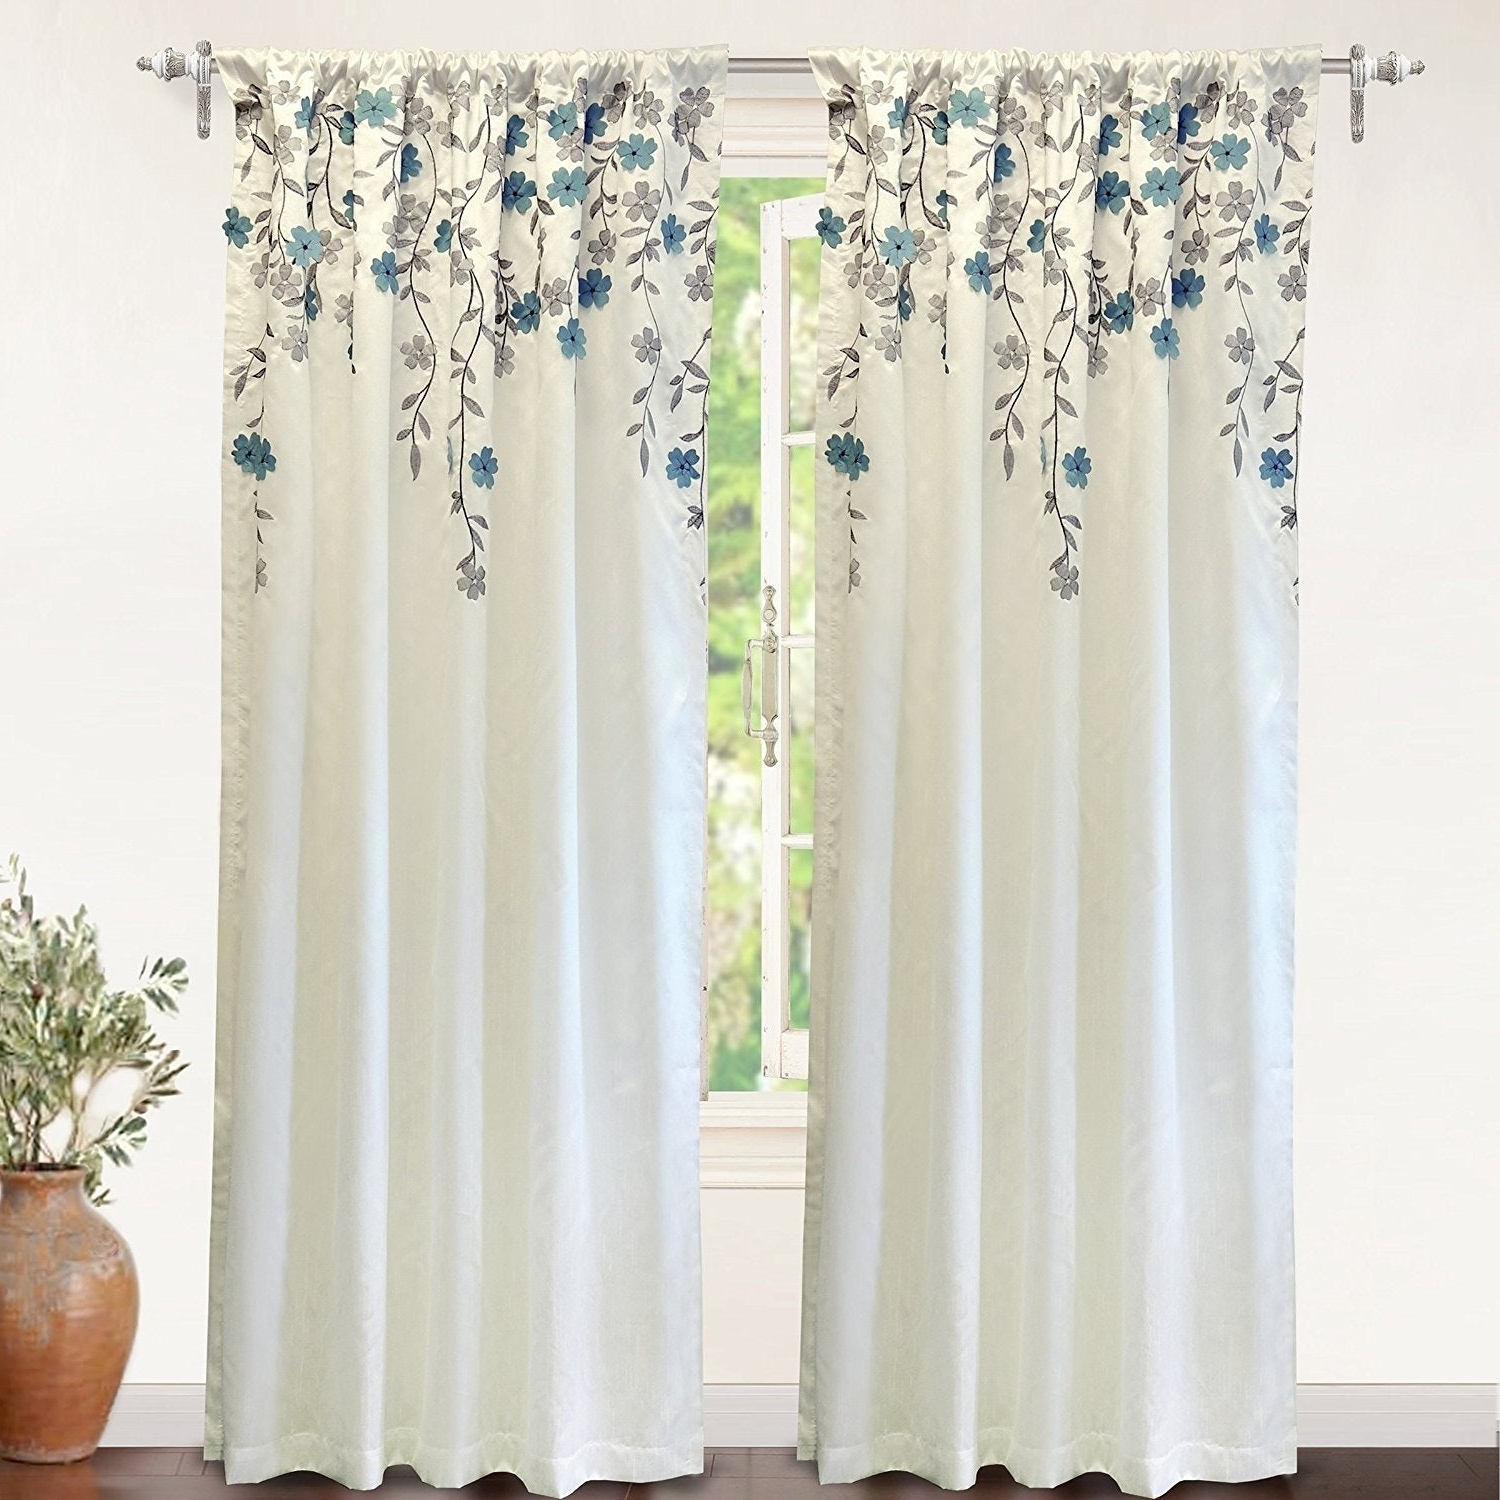 Most Popular Ofloral Embroidered Faux Silk Window Curtain Panels Inside Driftaway Isabella Faux Silk Lined Thermal Embroidered Crafted Flower Window Curtain Panel (View 5 of 20)